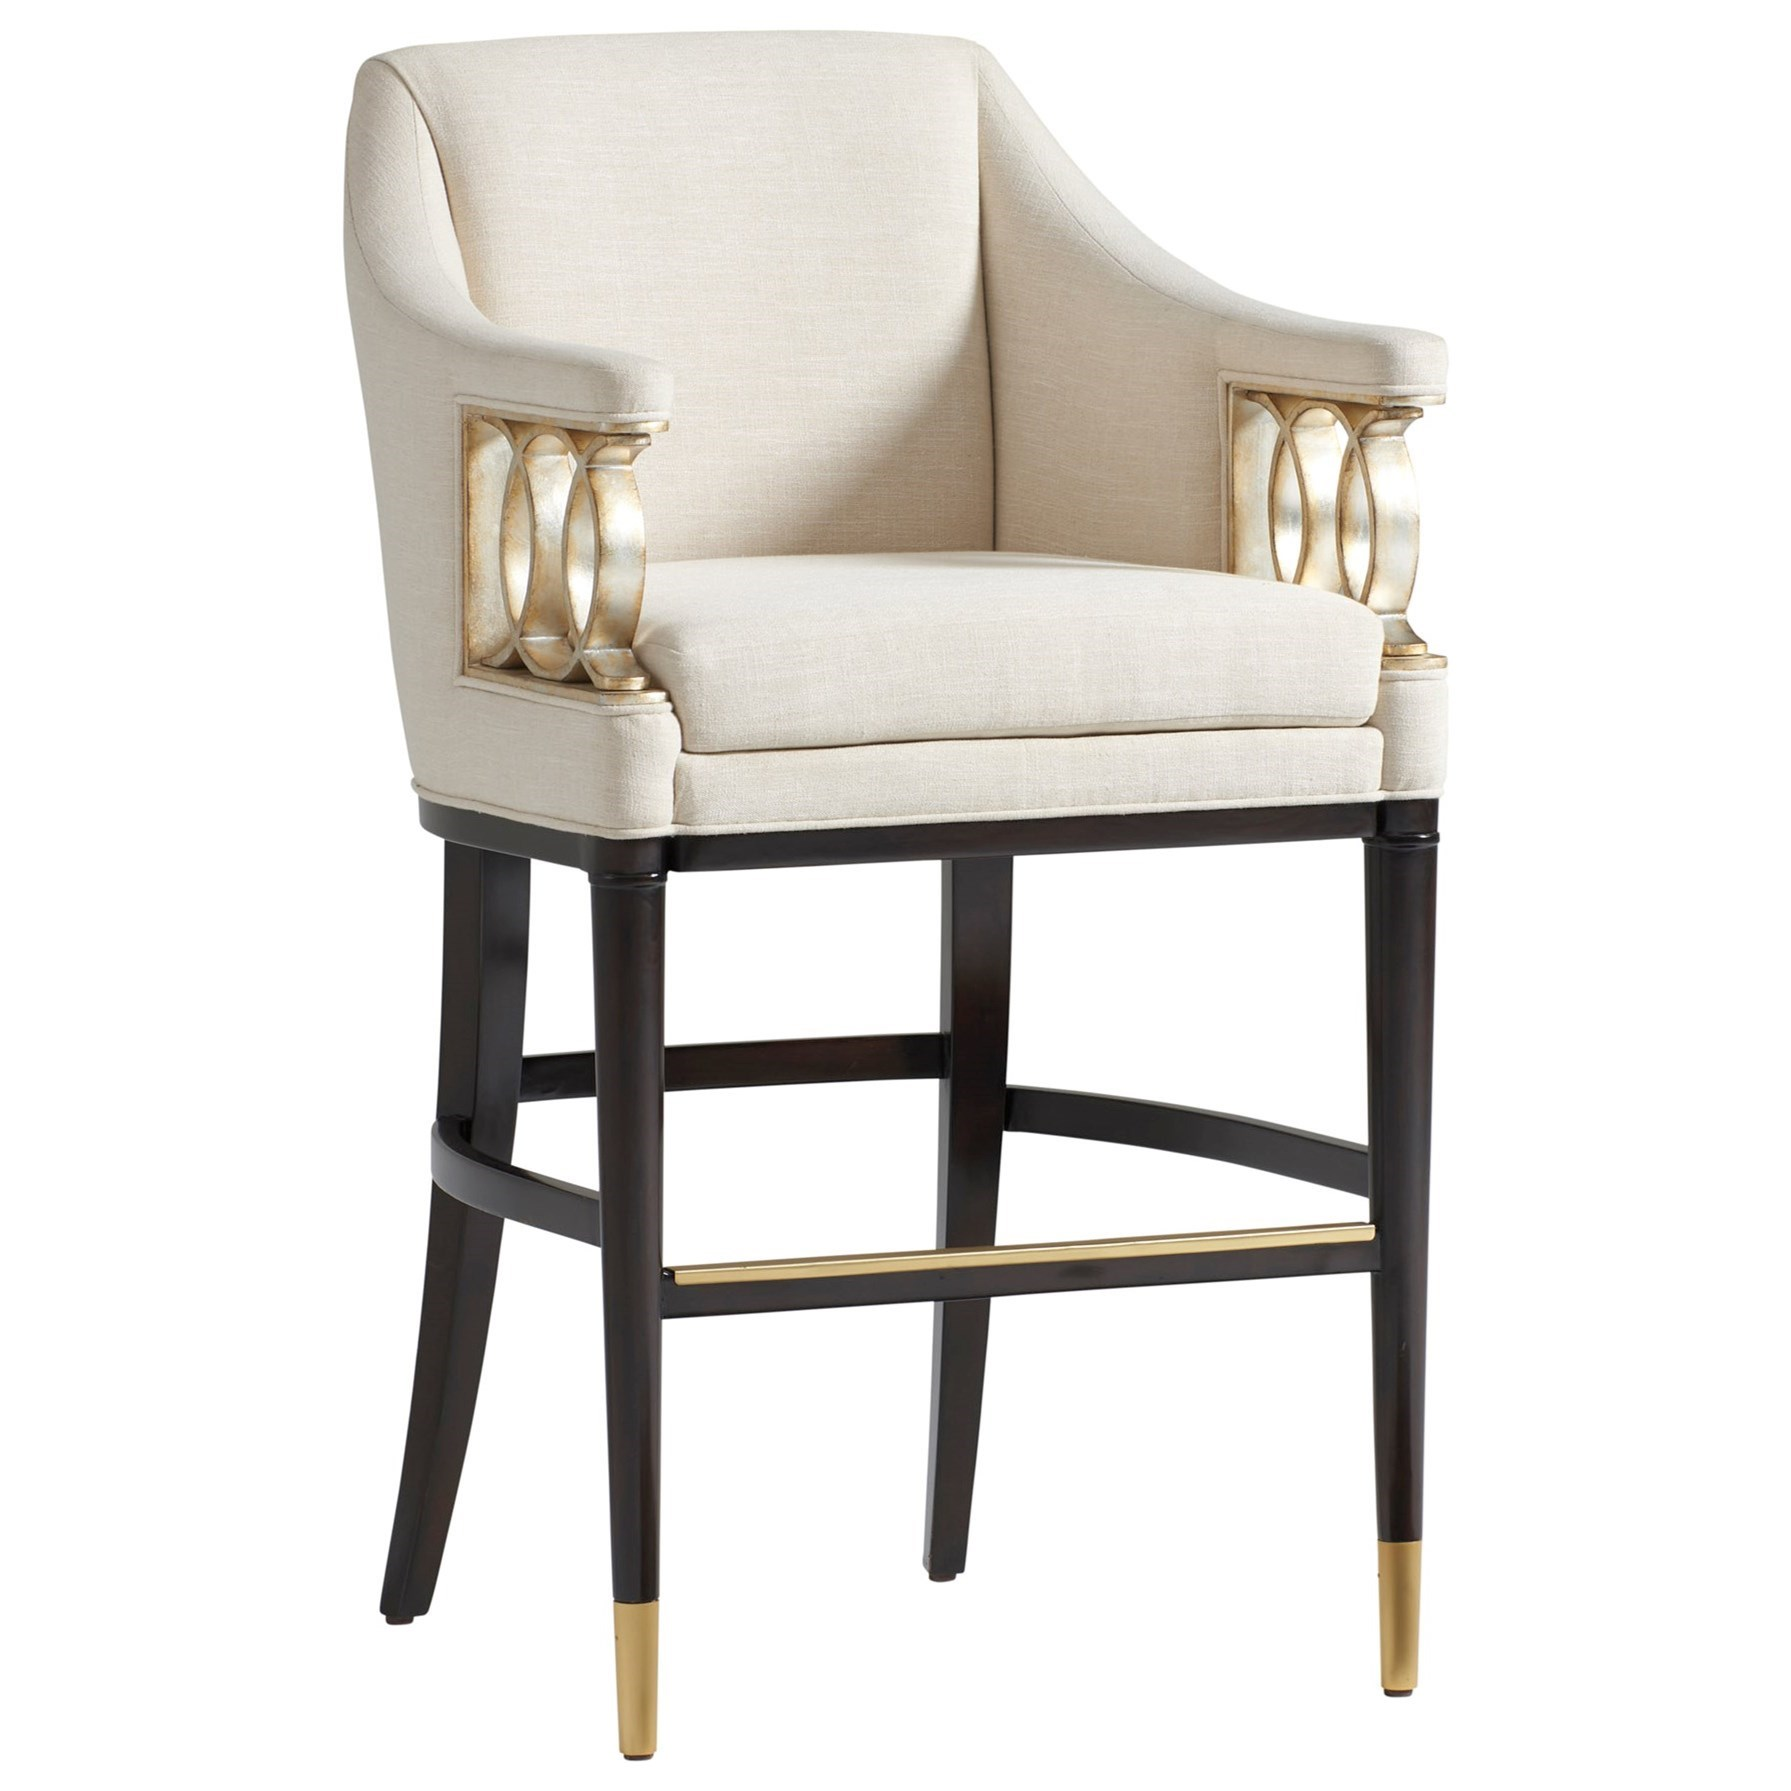 Carlyle Hemsley Upholstered Bar Stool  by Lexington at Baer's Furniture